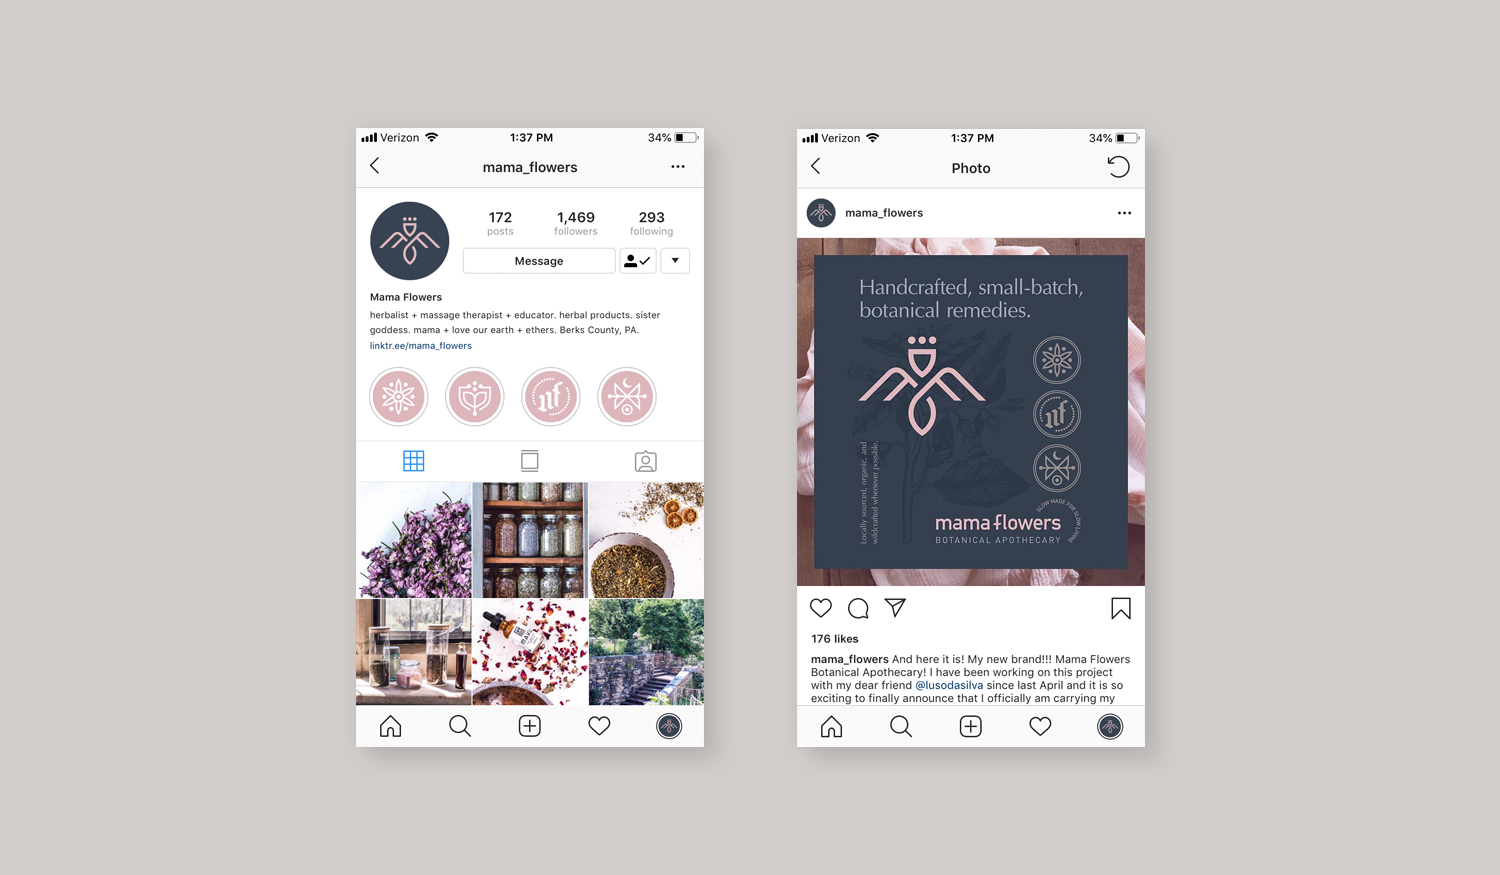 Mama Flowers visual identity social media profile graphics for Instagram